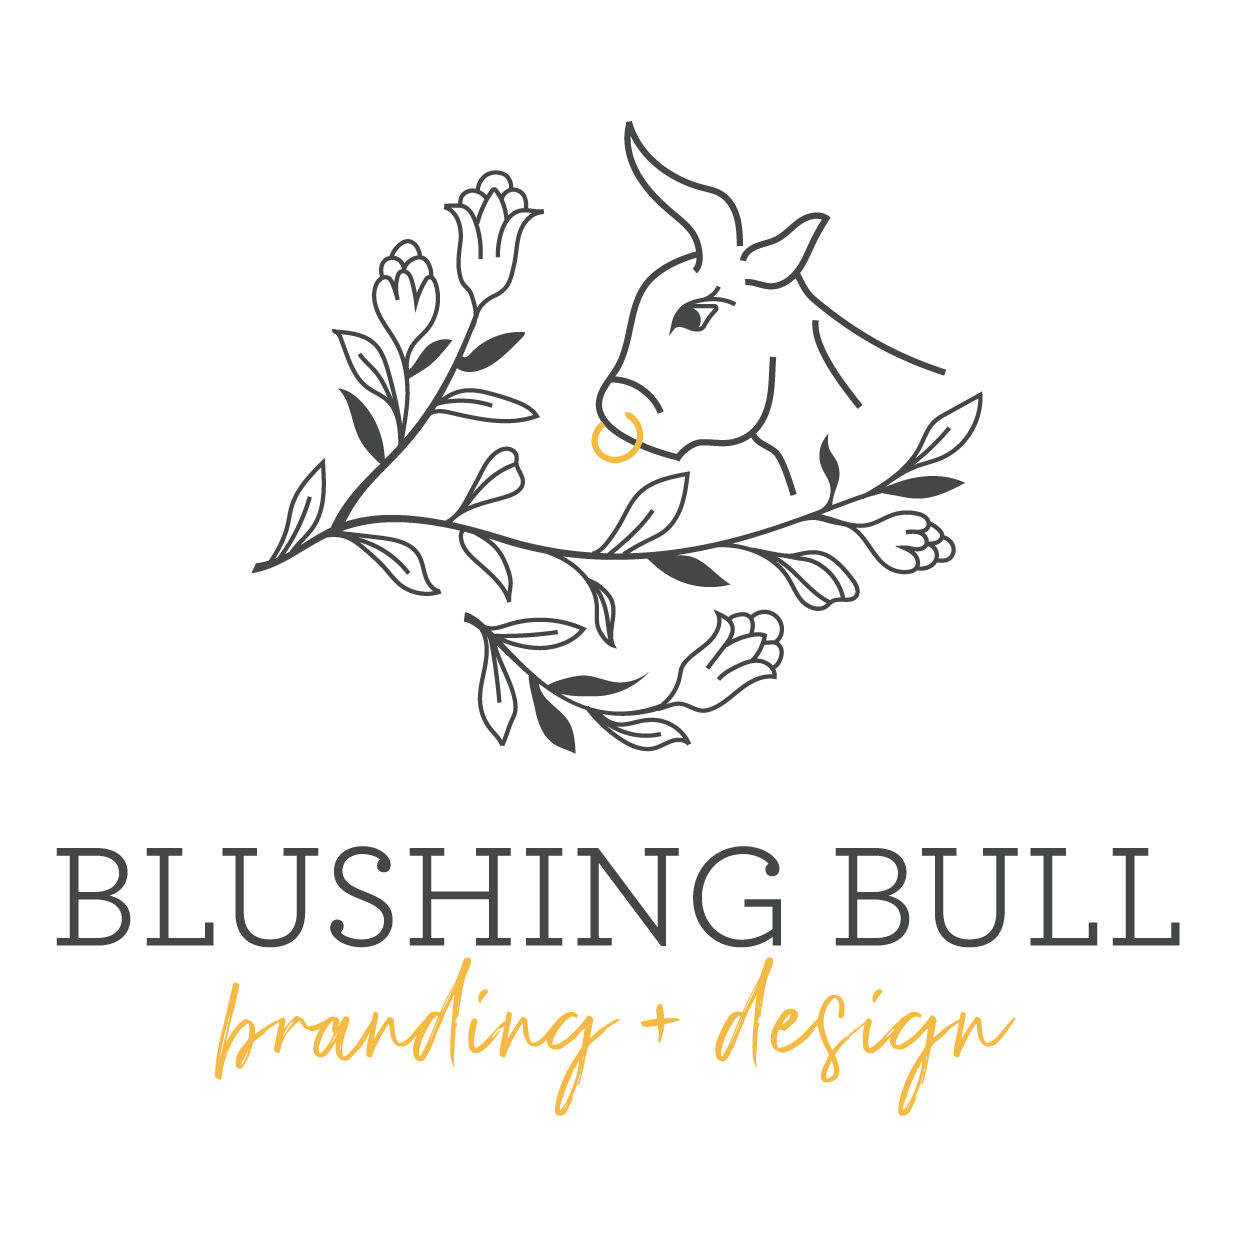 Blushing Bull - Boutique Branding and Graphic Design in Olympia, Washington & Beyond